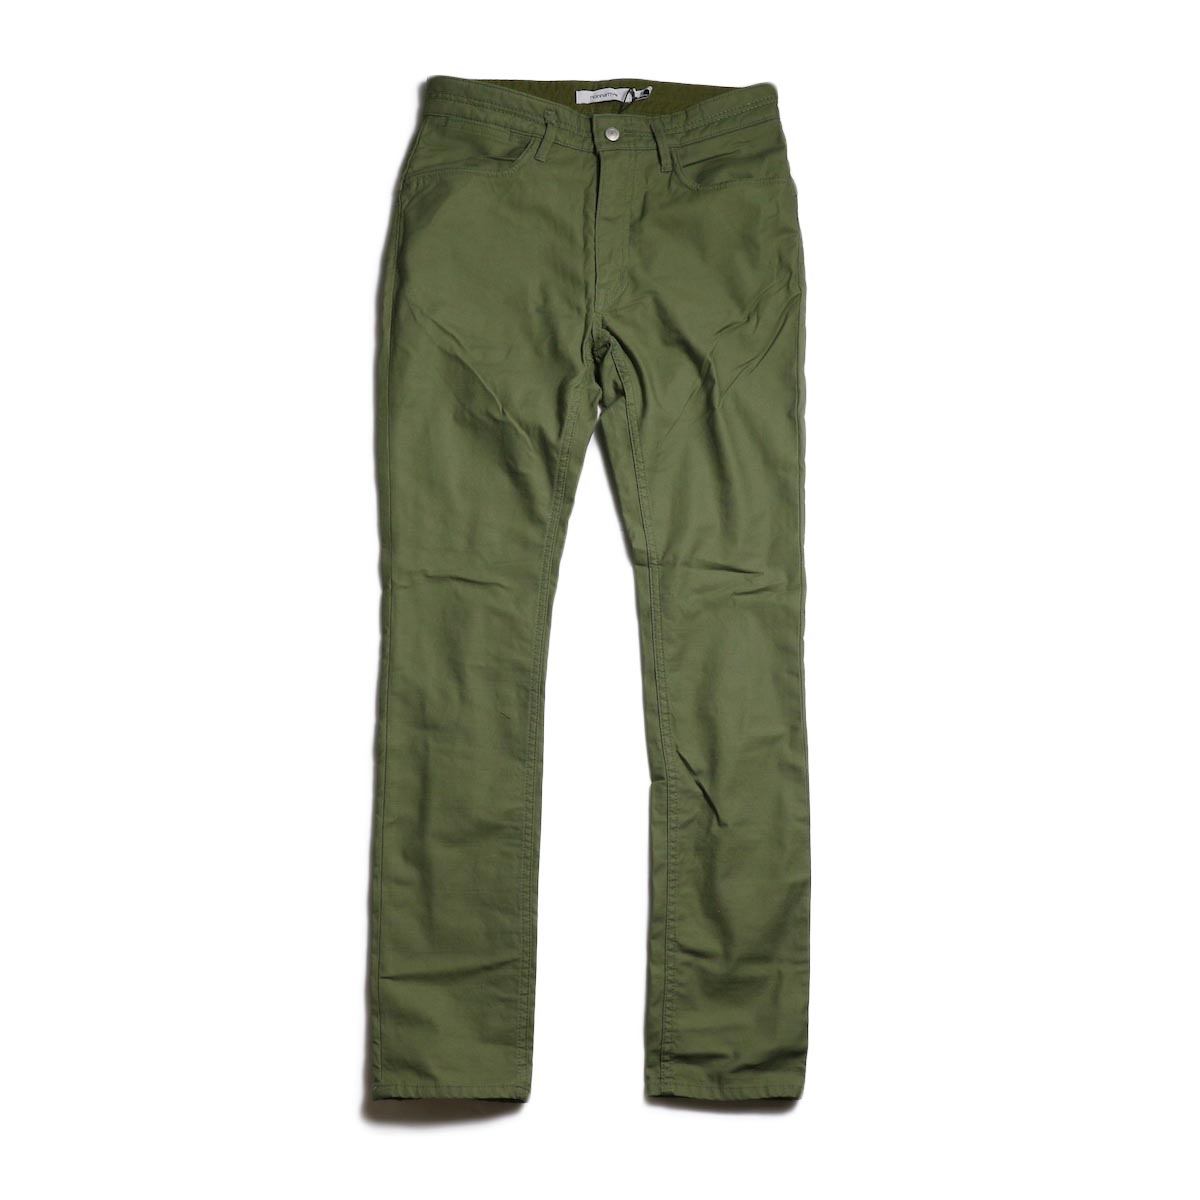 nonnative / DWELLER 5P JEANS DROPPED FIT C/P BACK SATIN STRETCH -Olive